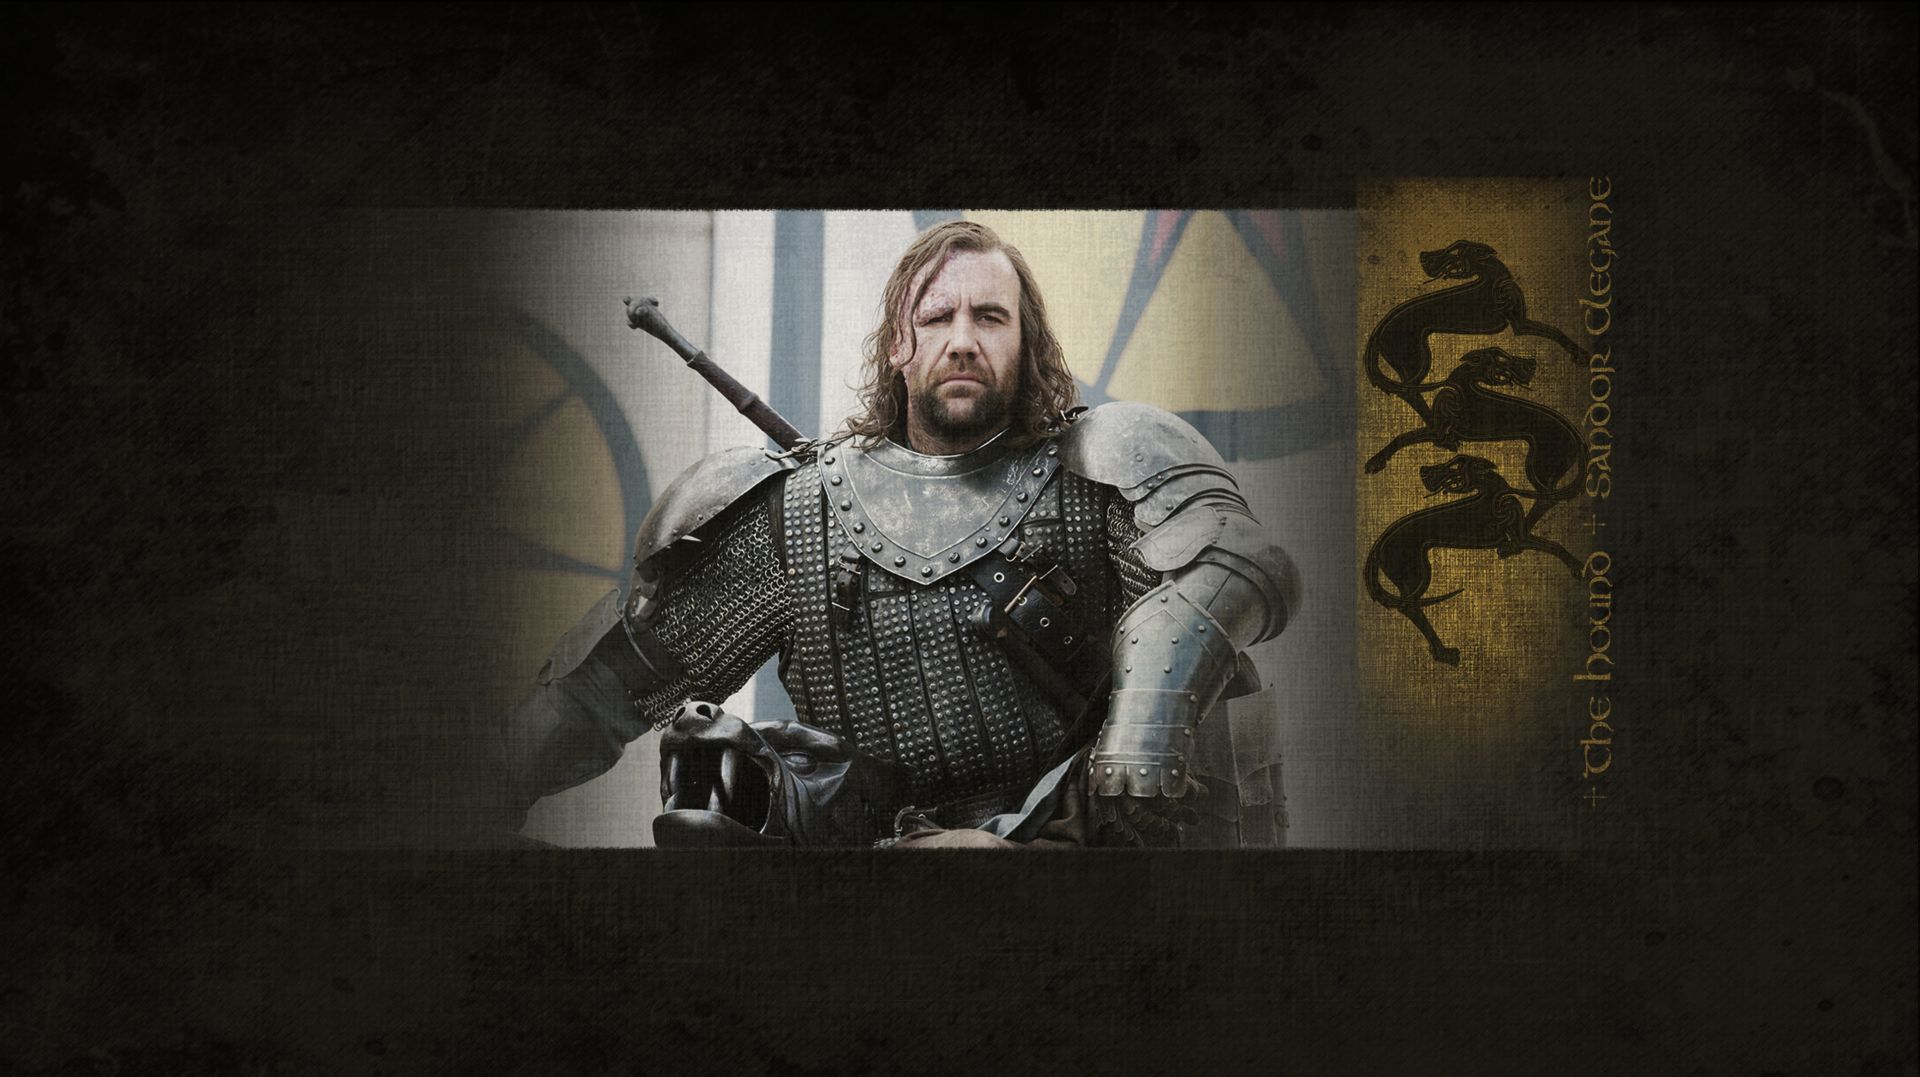 The Hound Sandor Clegane Wallpaper 1920x1080 Game Of Thrones